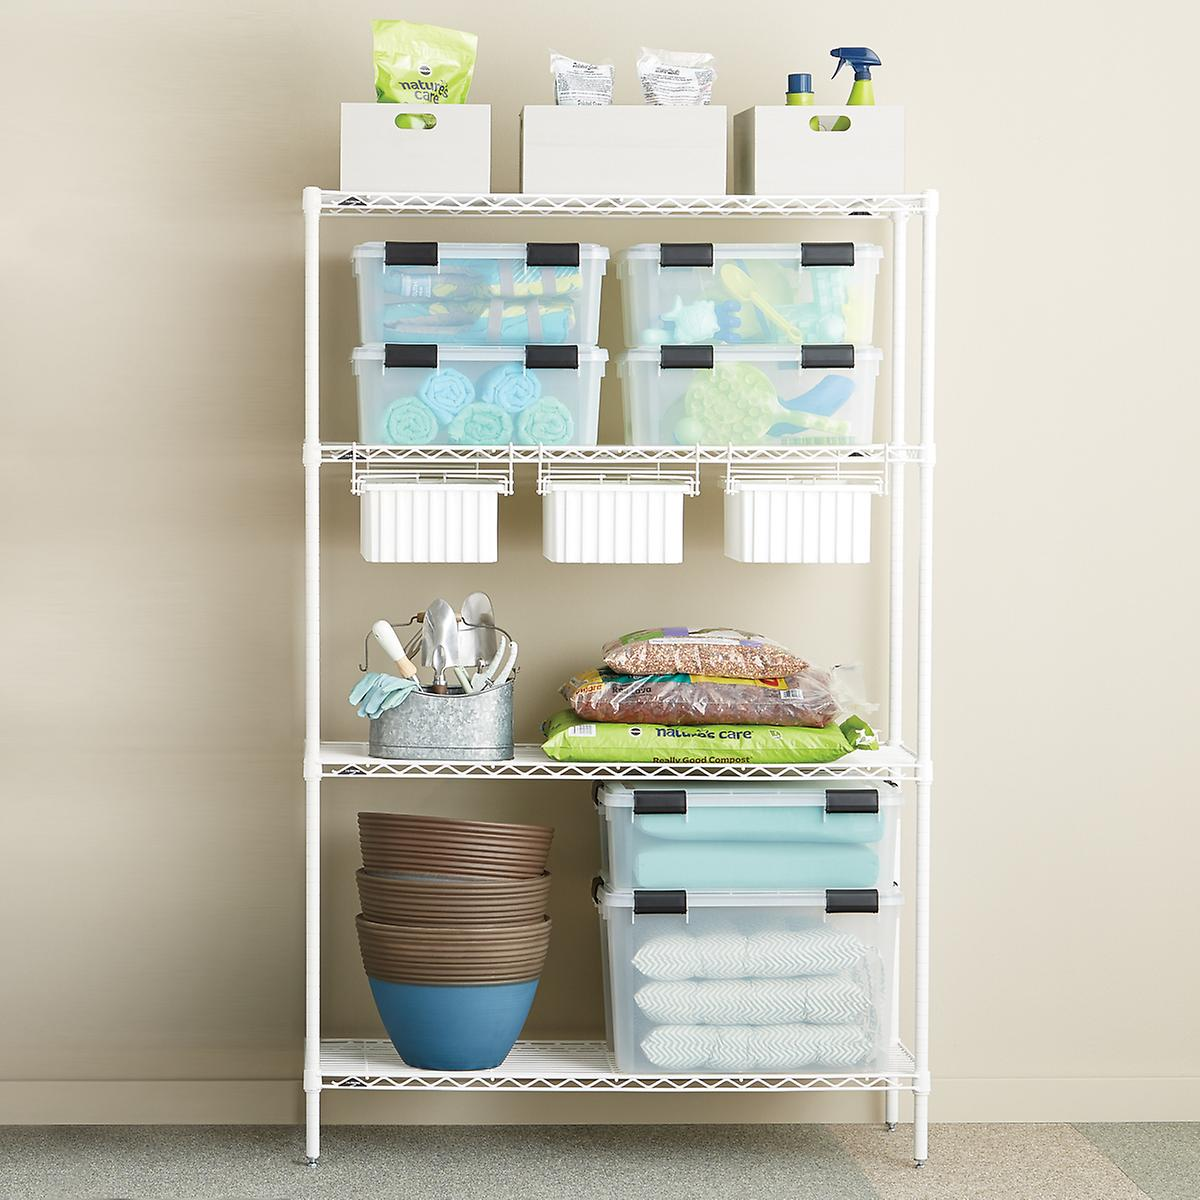 InterMetro Gardening Solution with Drawers   The Container Store